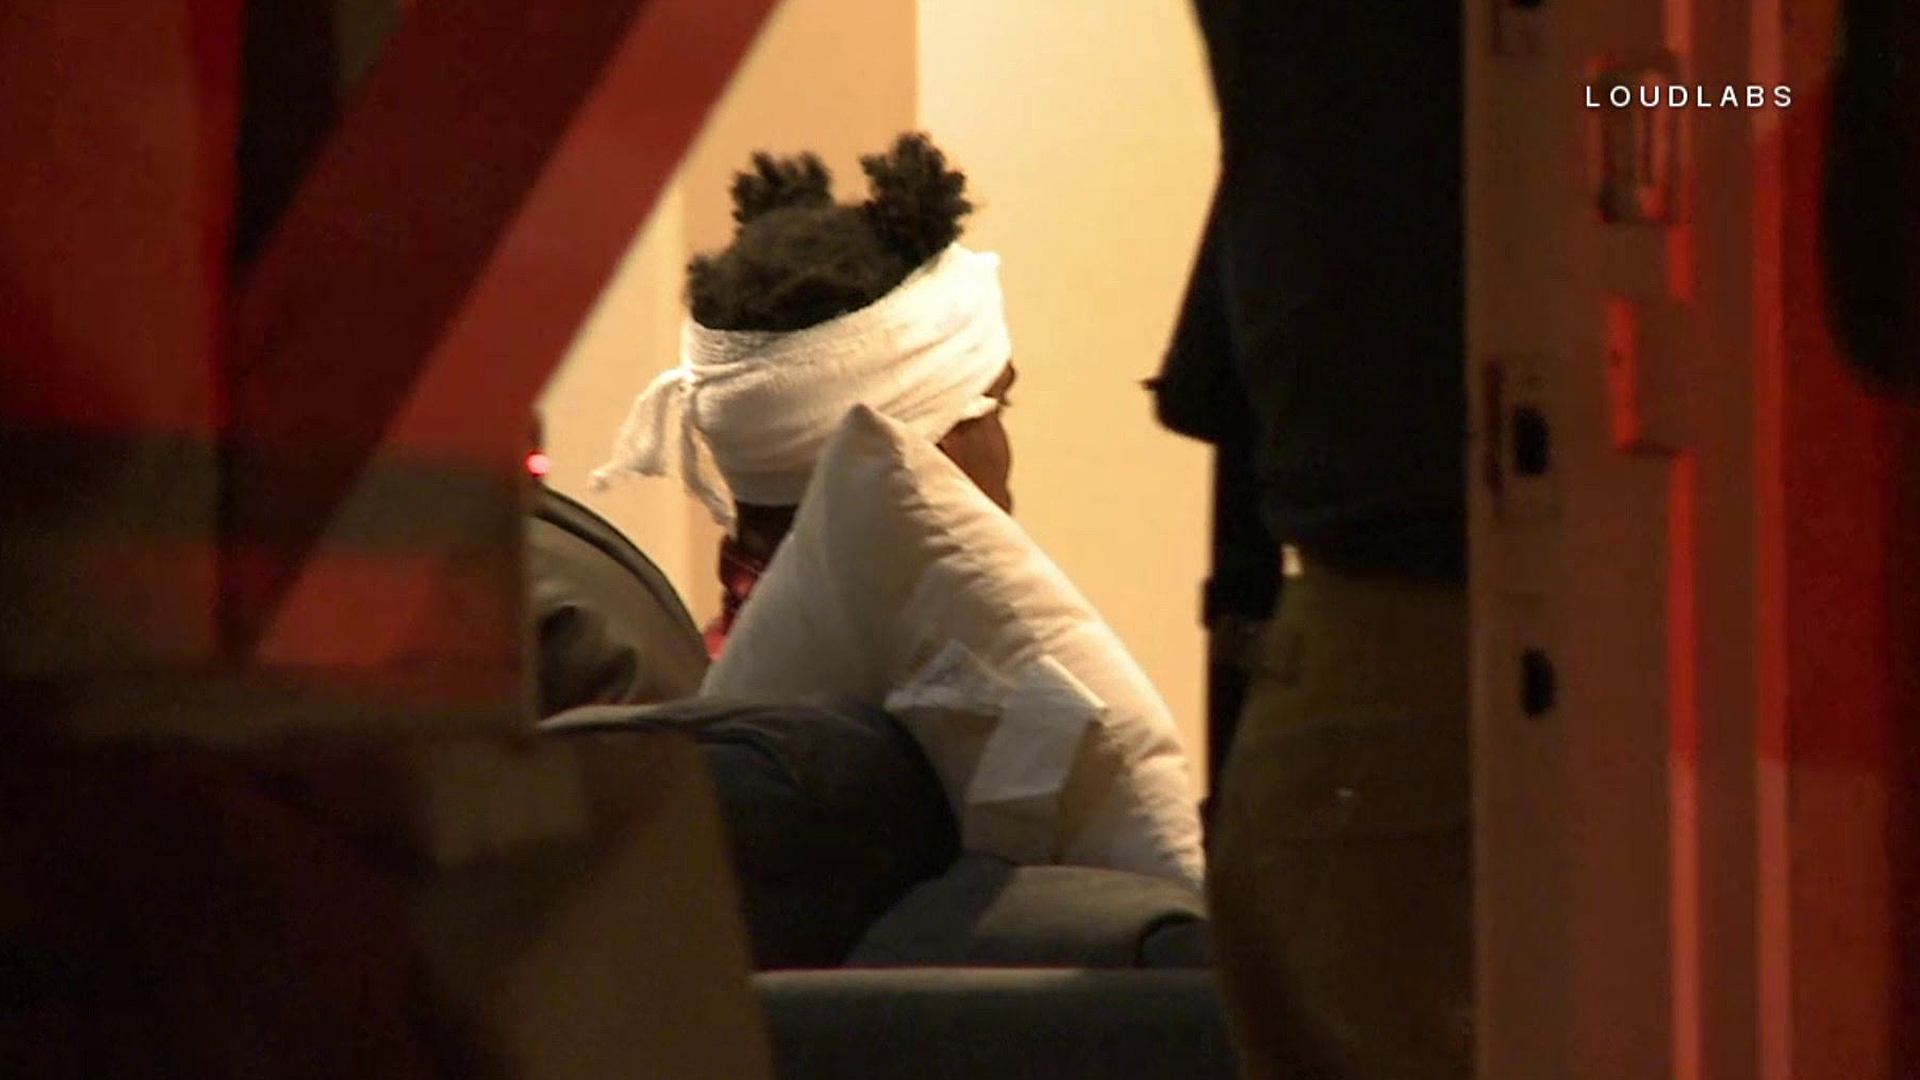 A man is treated following a home-invasion robbery in Hollywood Hills on Sept. 24, 2018. (Credit: Loudlabs)